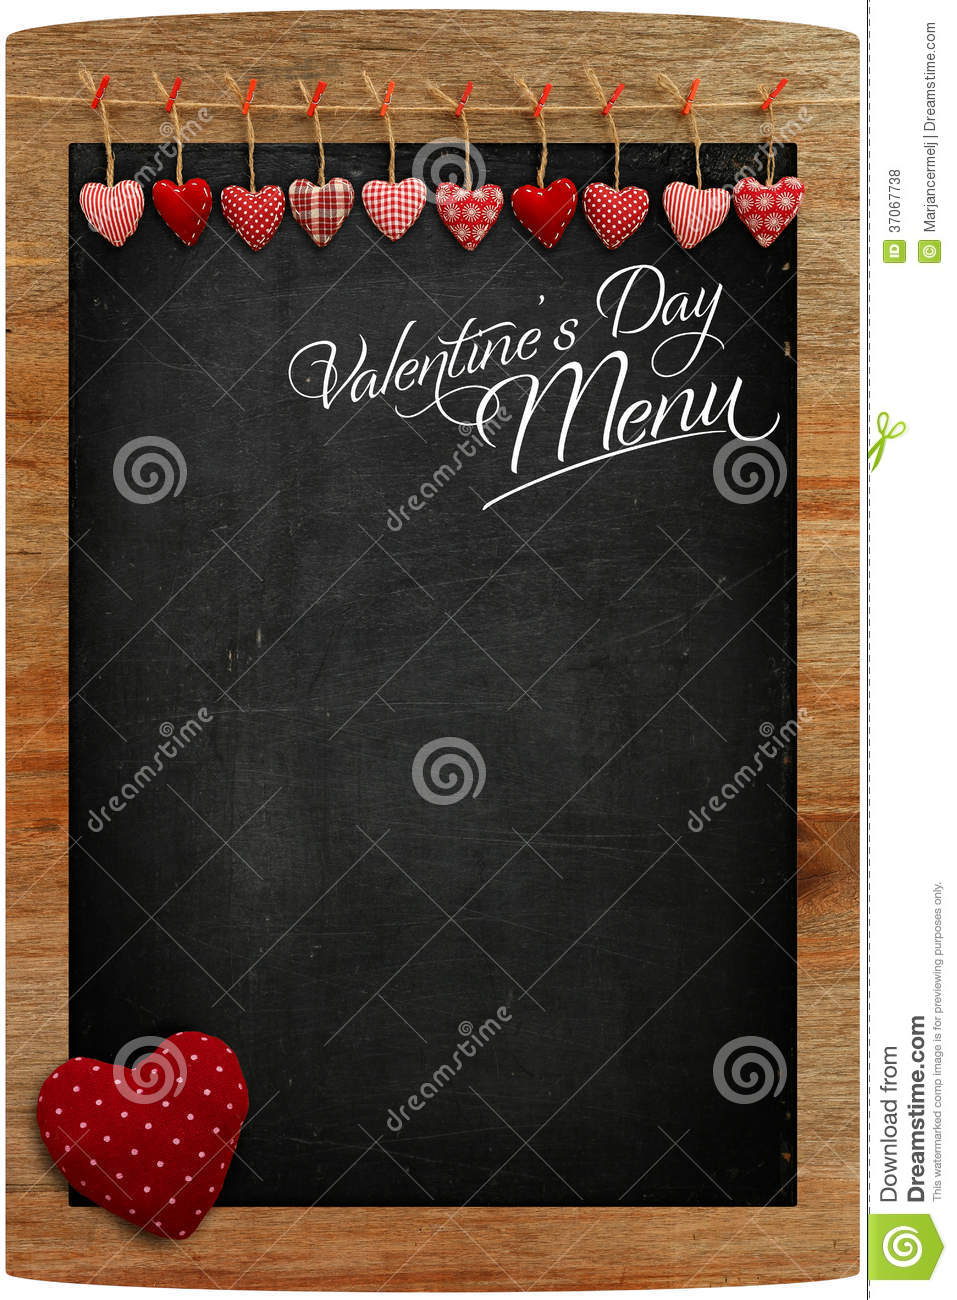 Valentine S Day Menu Chalkboard Fabric Love Hearts Hanging On Wo